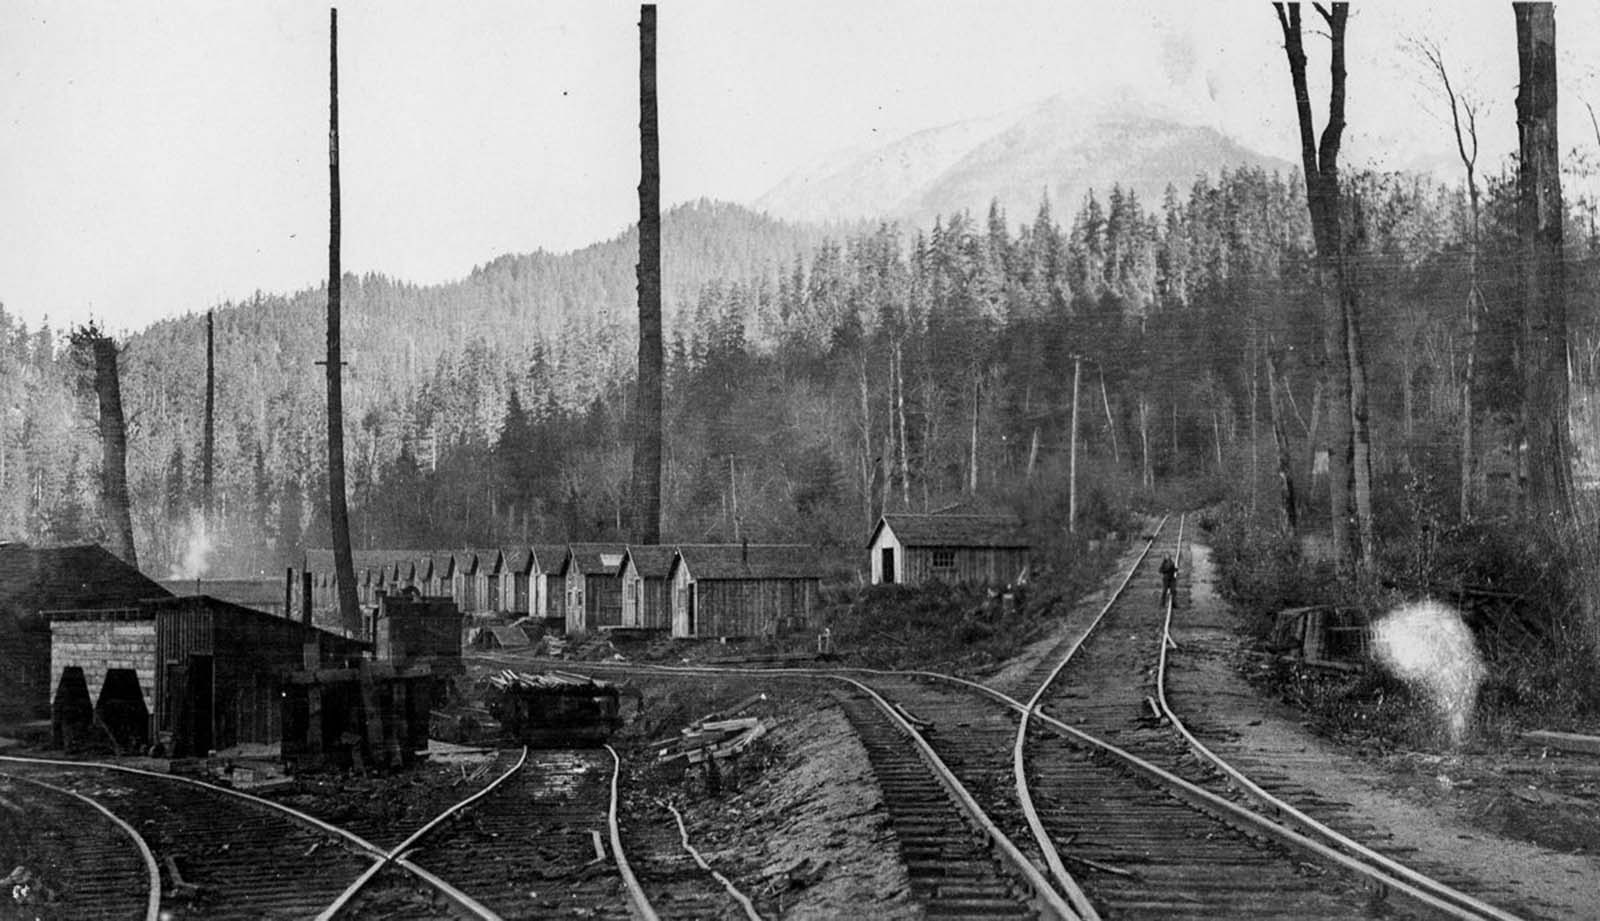 A logging landing camp on Harrison Lake in British Columbia. 1930.